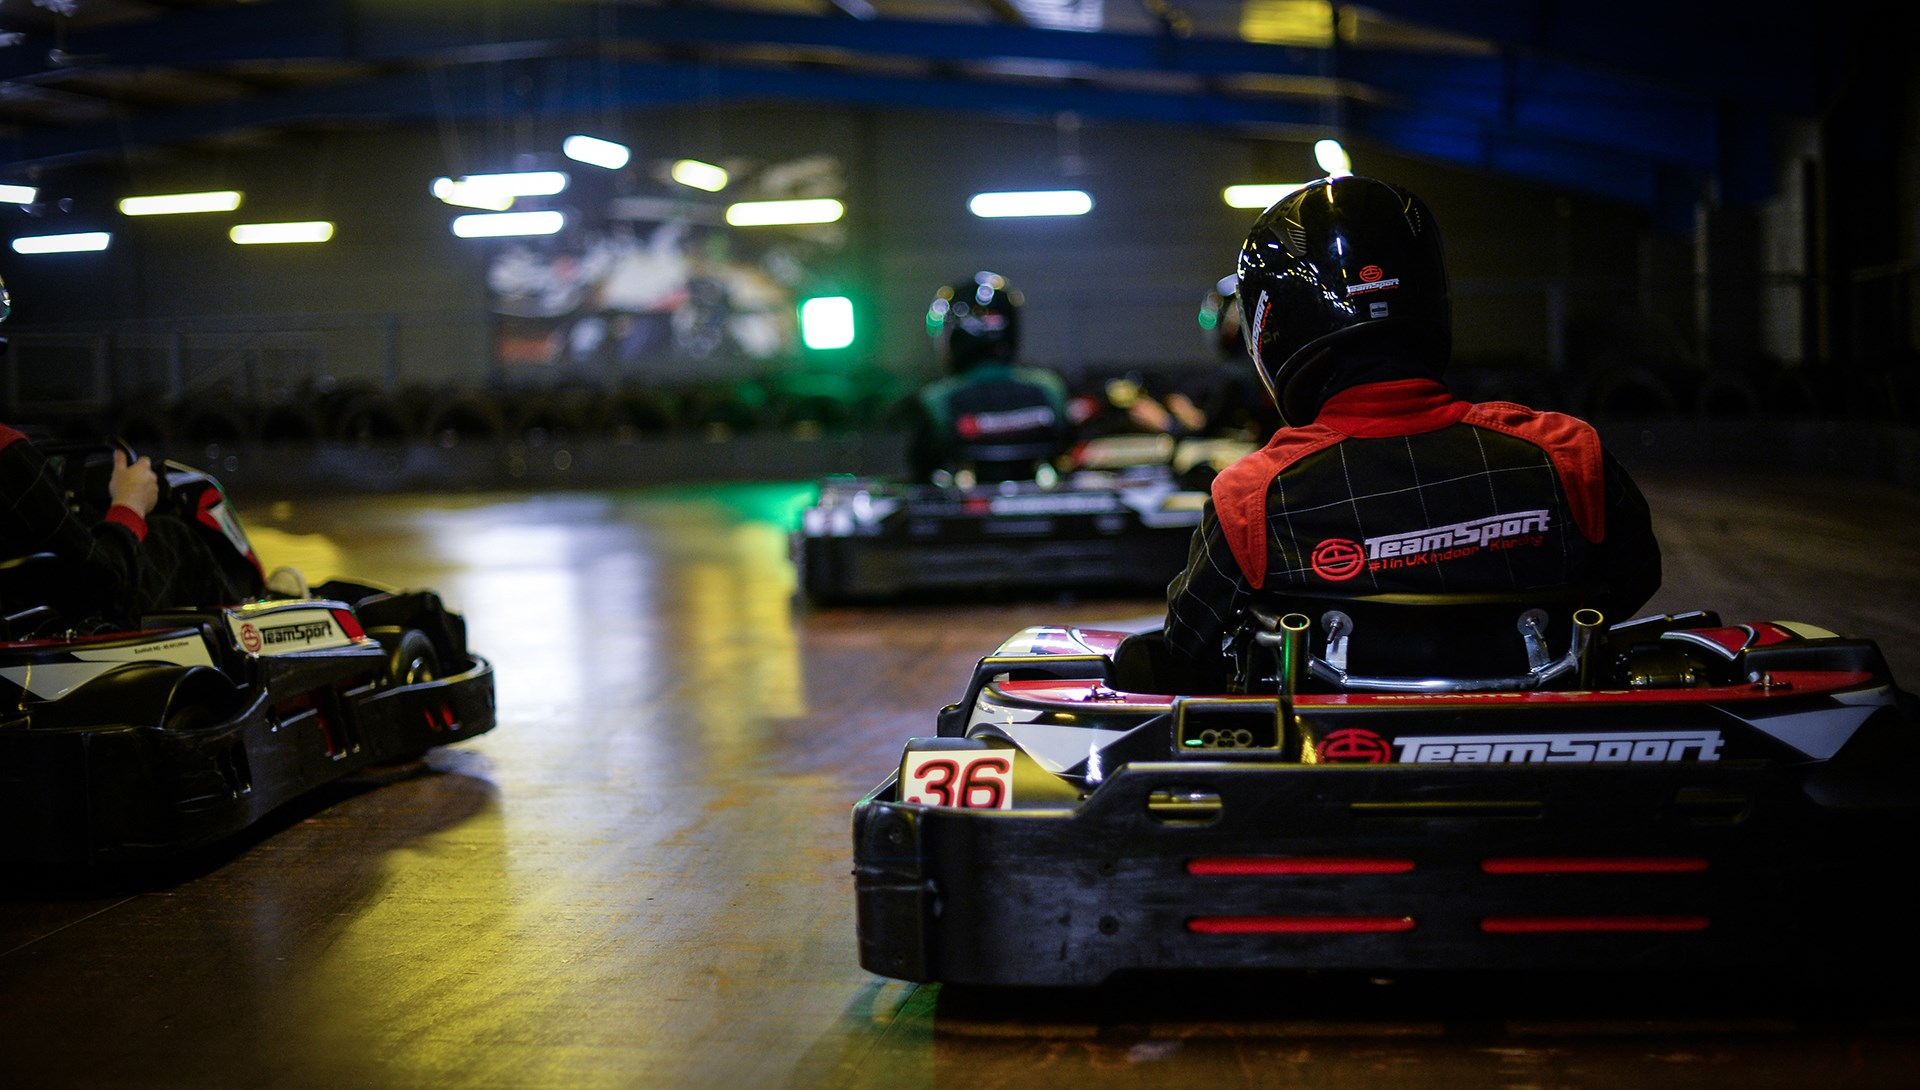 School holidays Offers and Events - Unlimited Karting